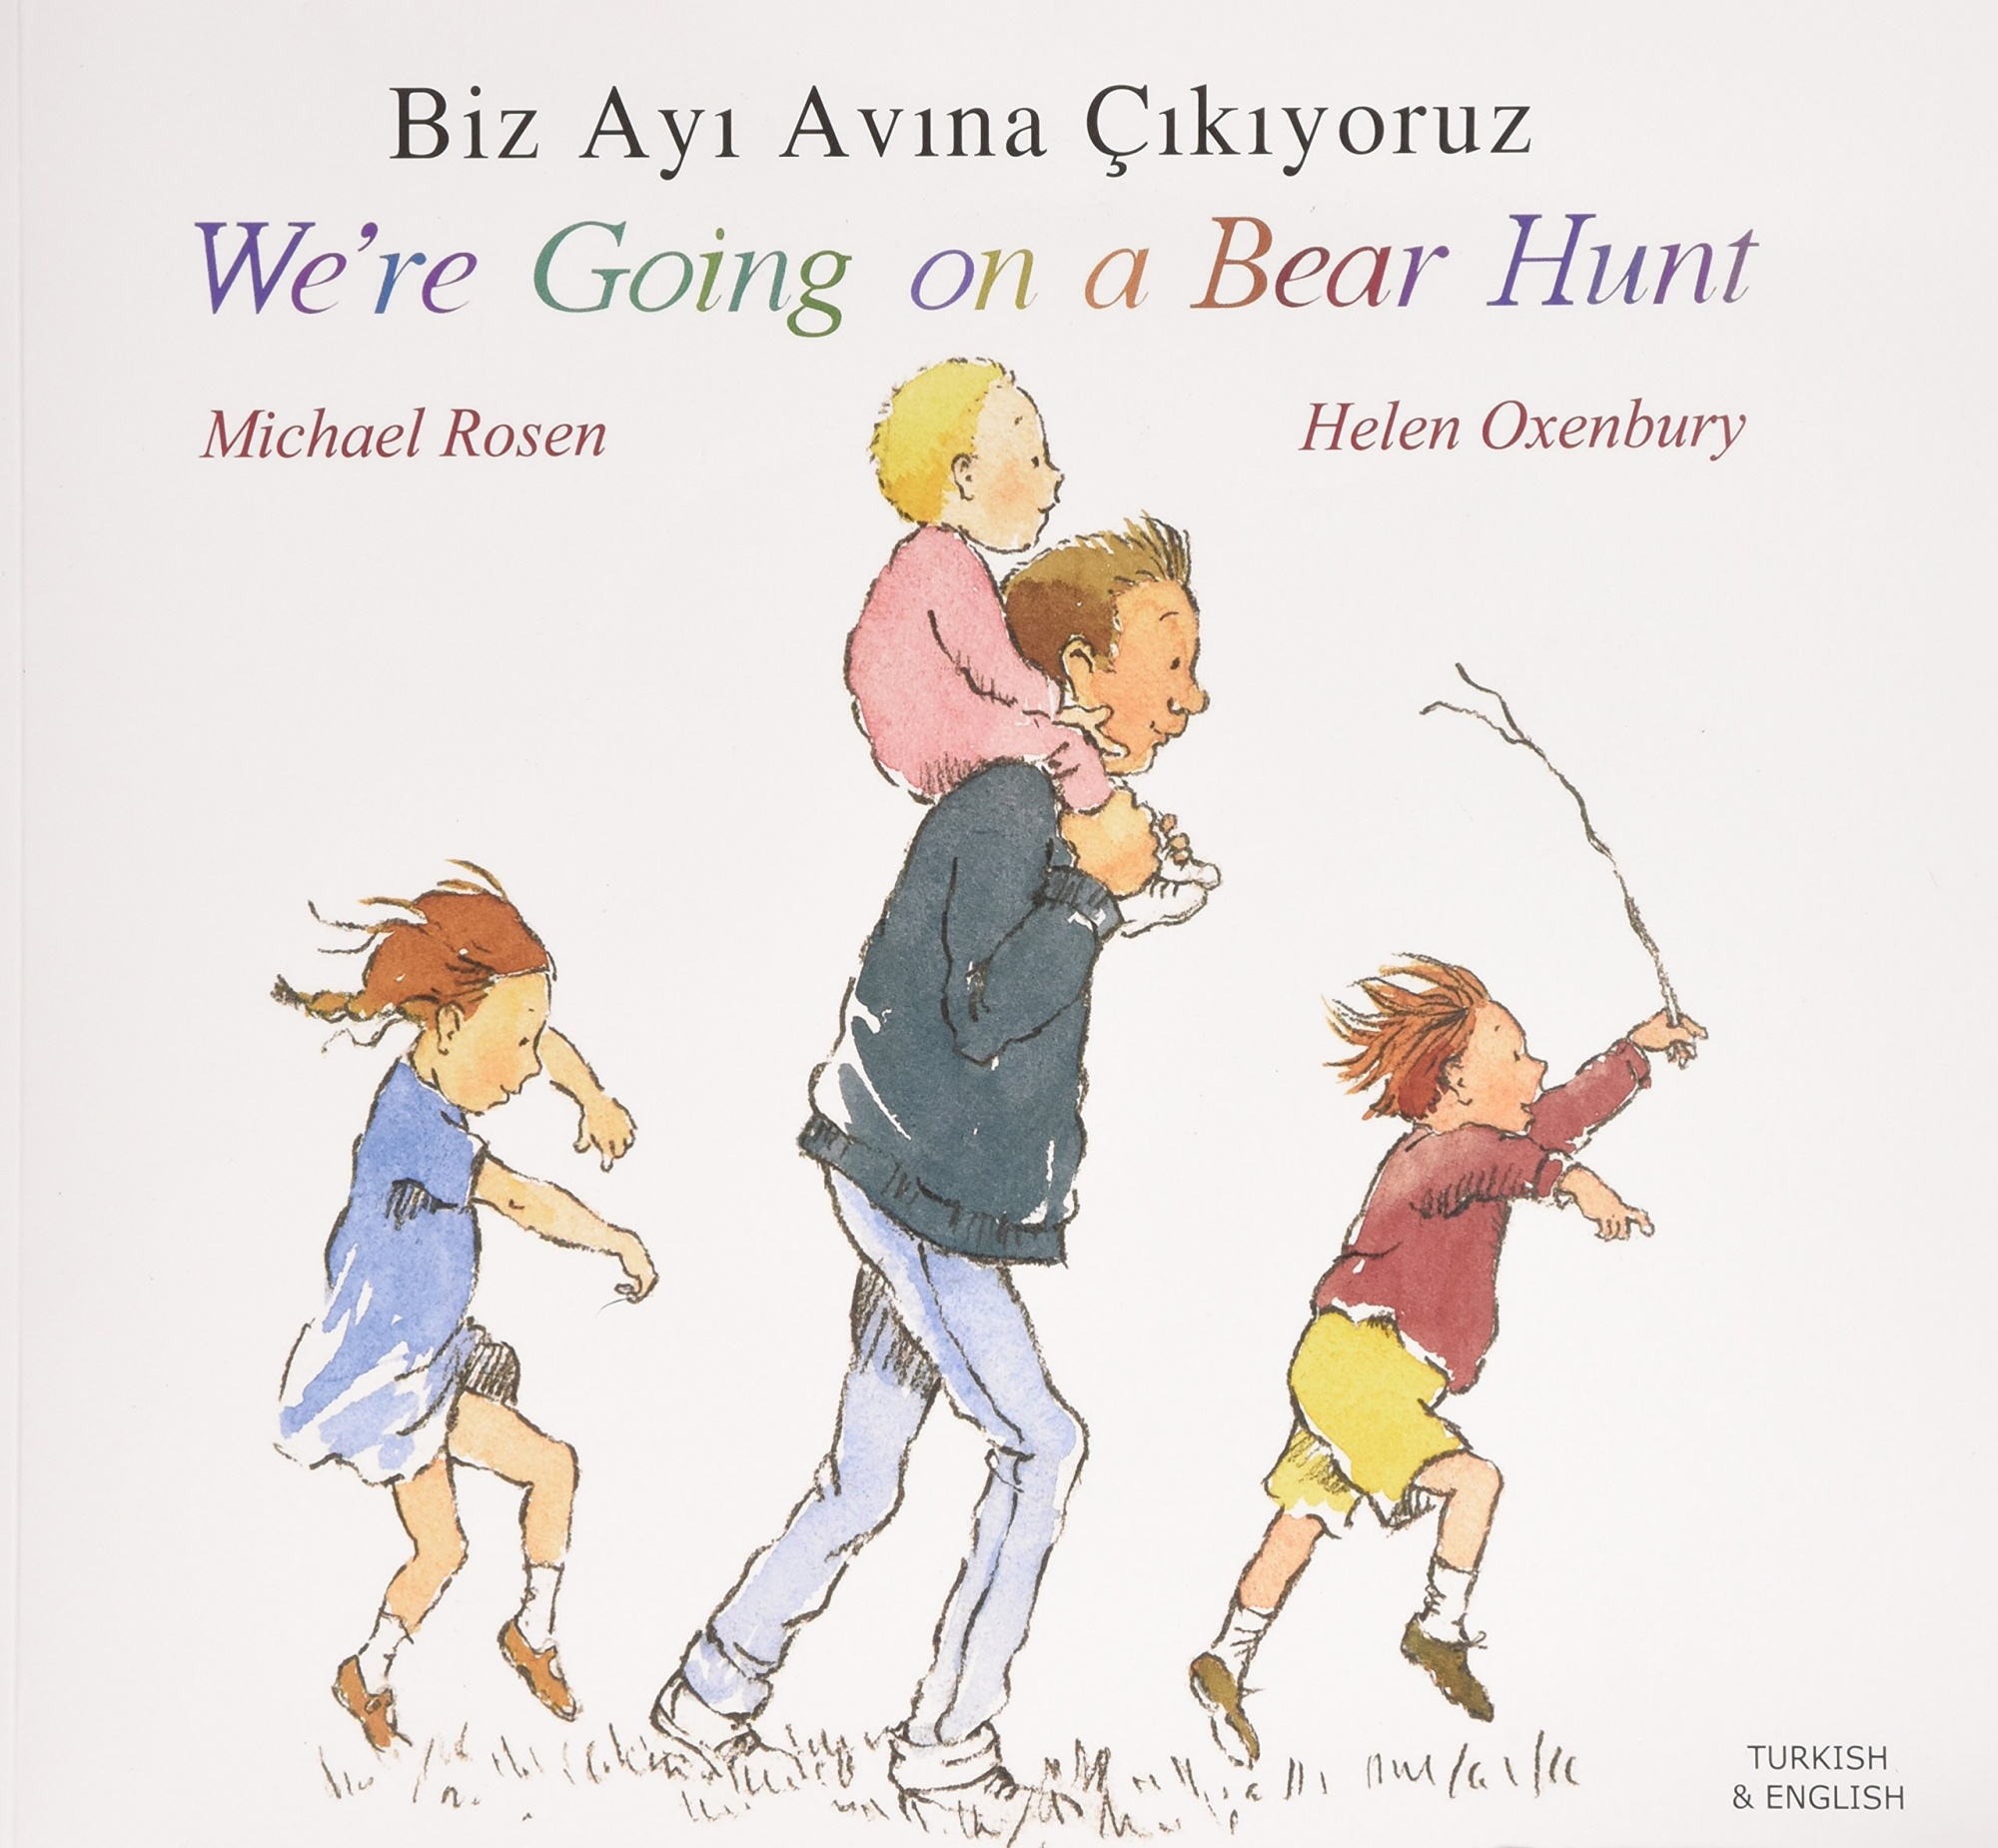 We're Going on a Bear Hunt in Turkish and English